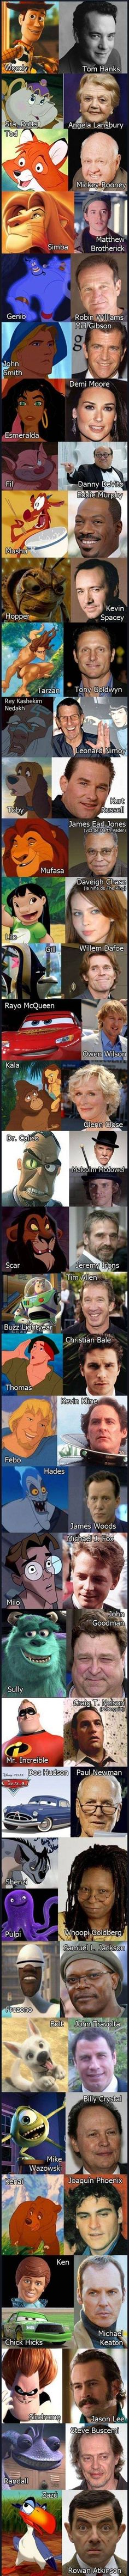 Ever wonder who did the voices of your favorite Disney characters?